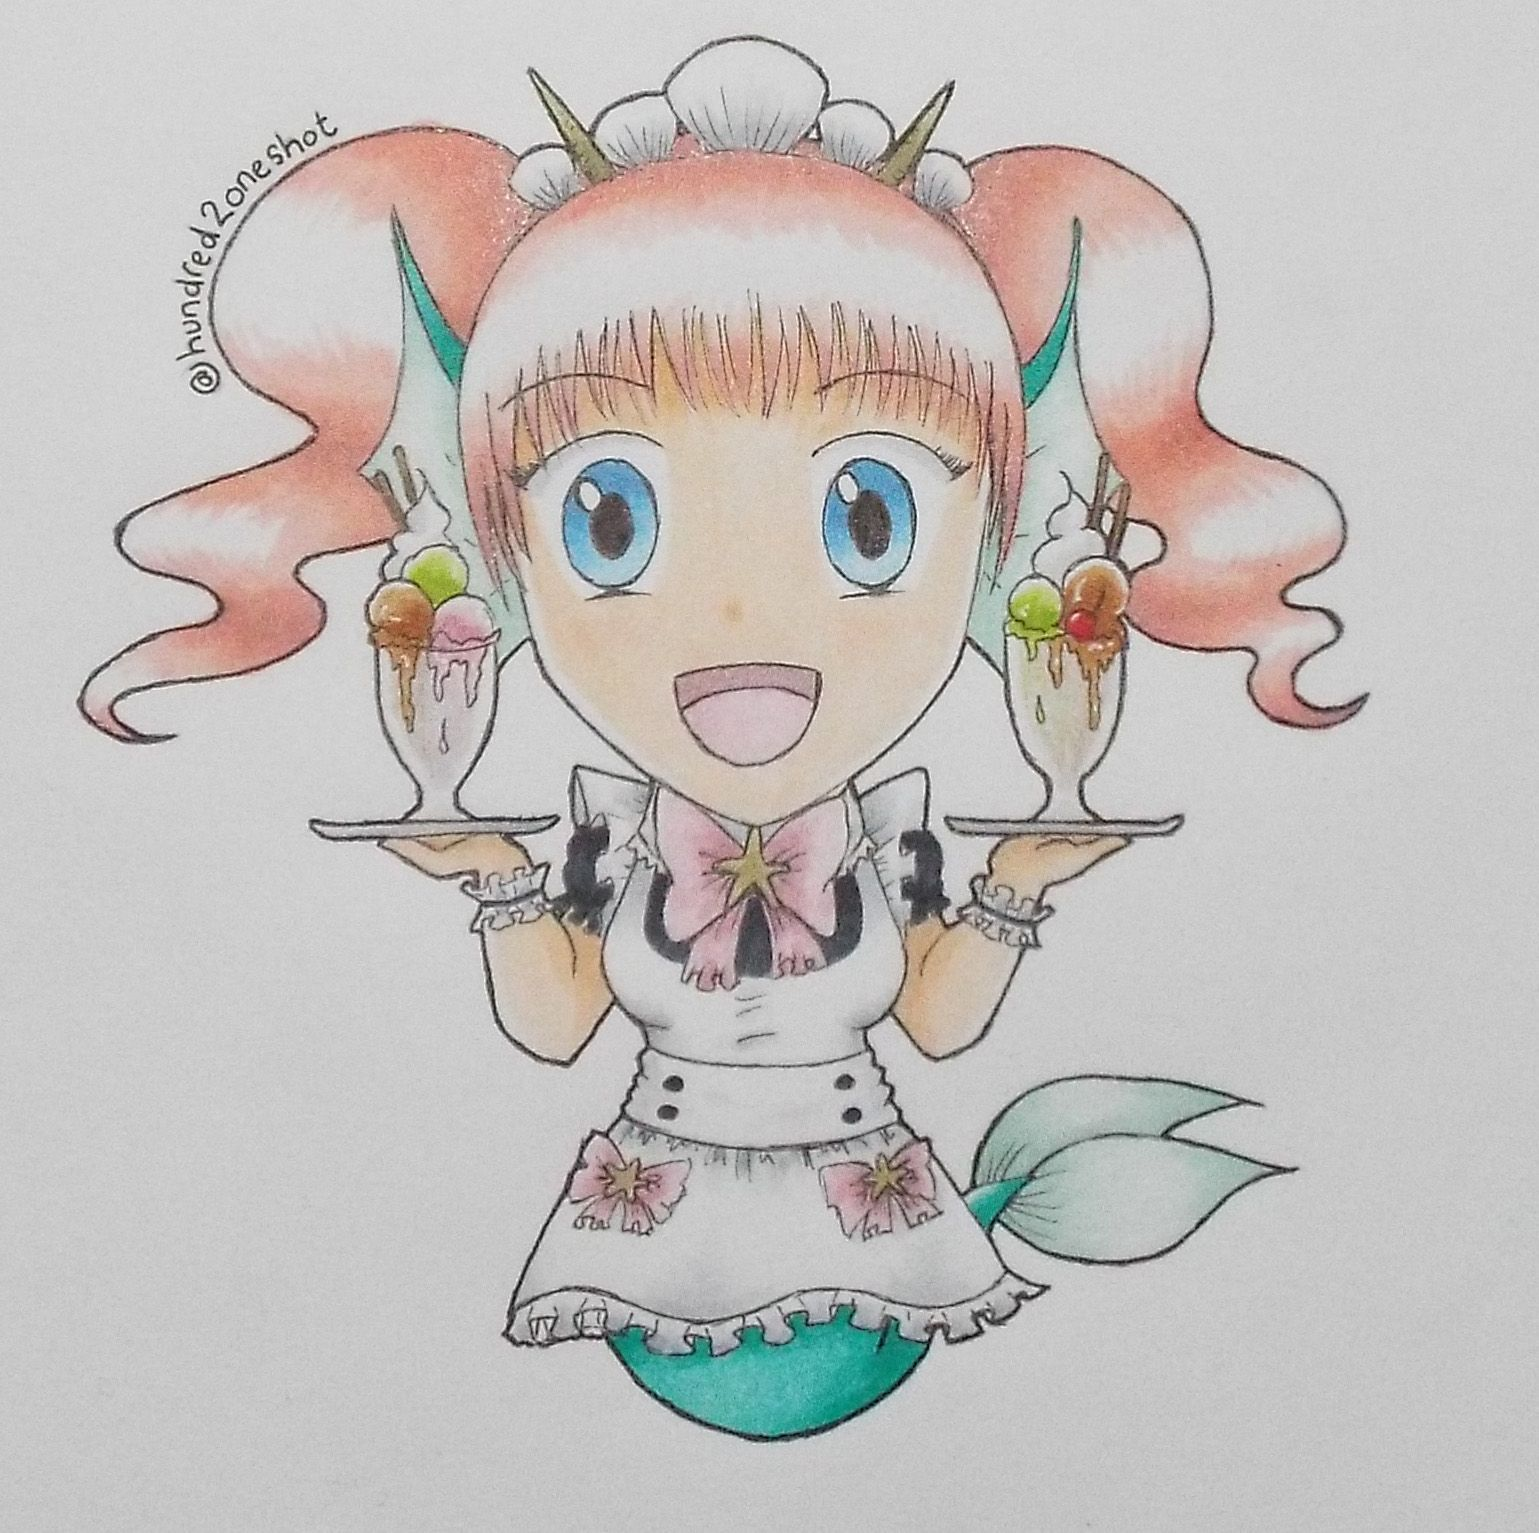 A chibi version of our 'Mer-Maid' design. Hoping to make this into some kind of pattern in the future. #mermaid #maid #chibi #anime #manga #girl #copic #illustration #design #kawaii